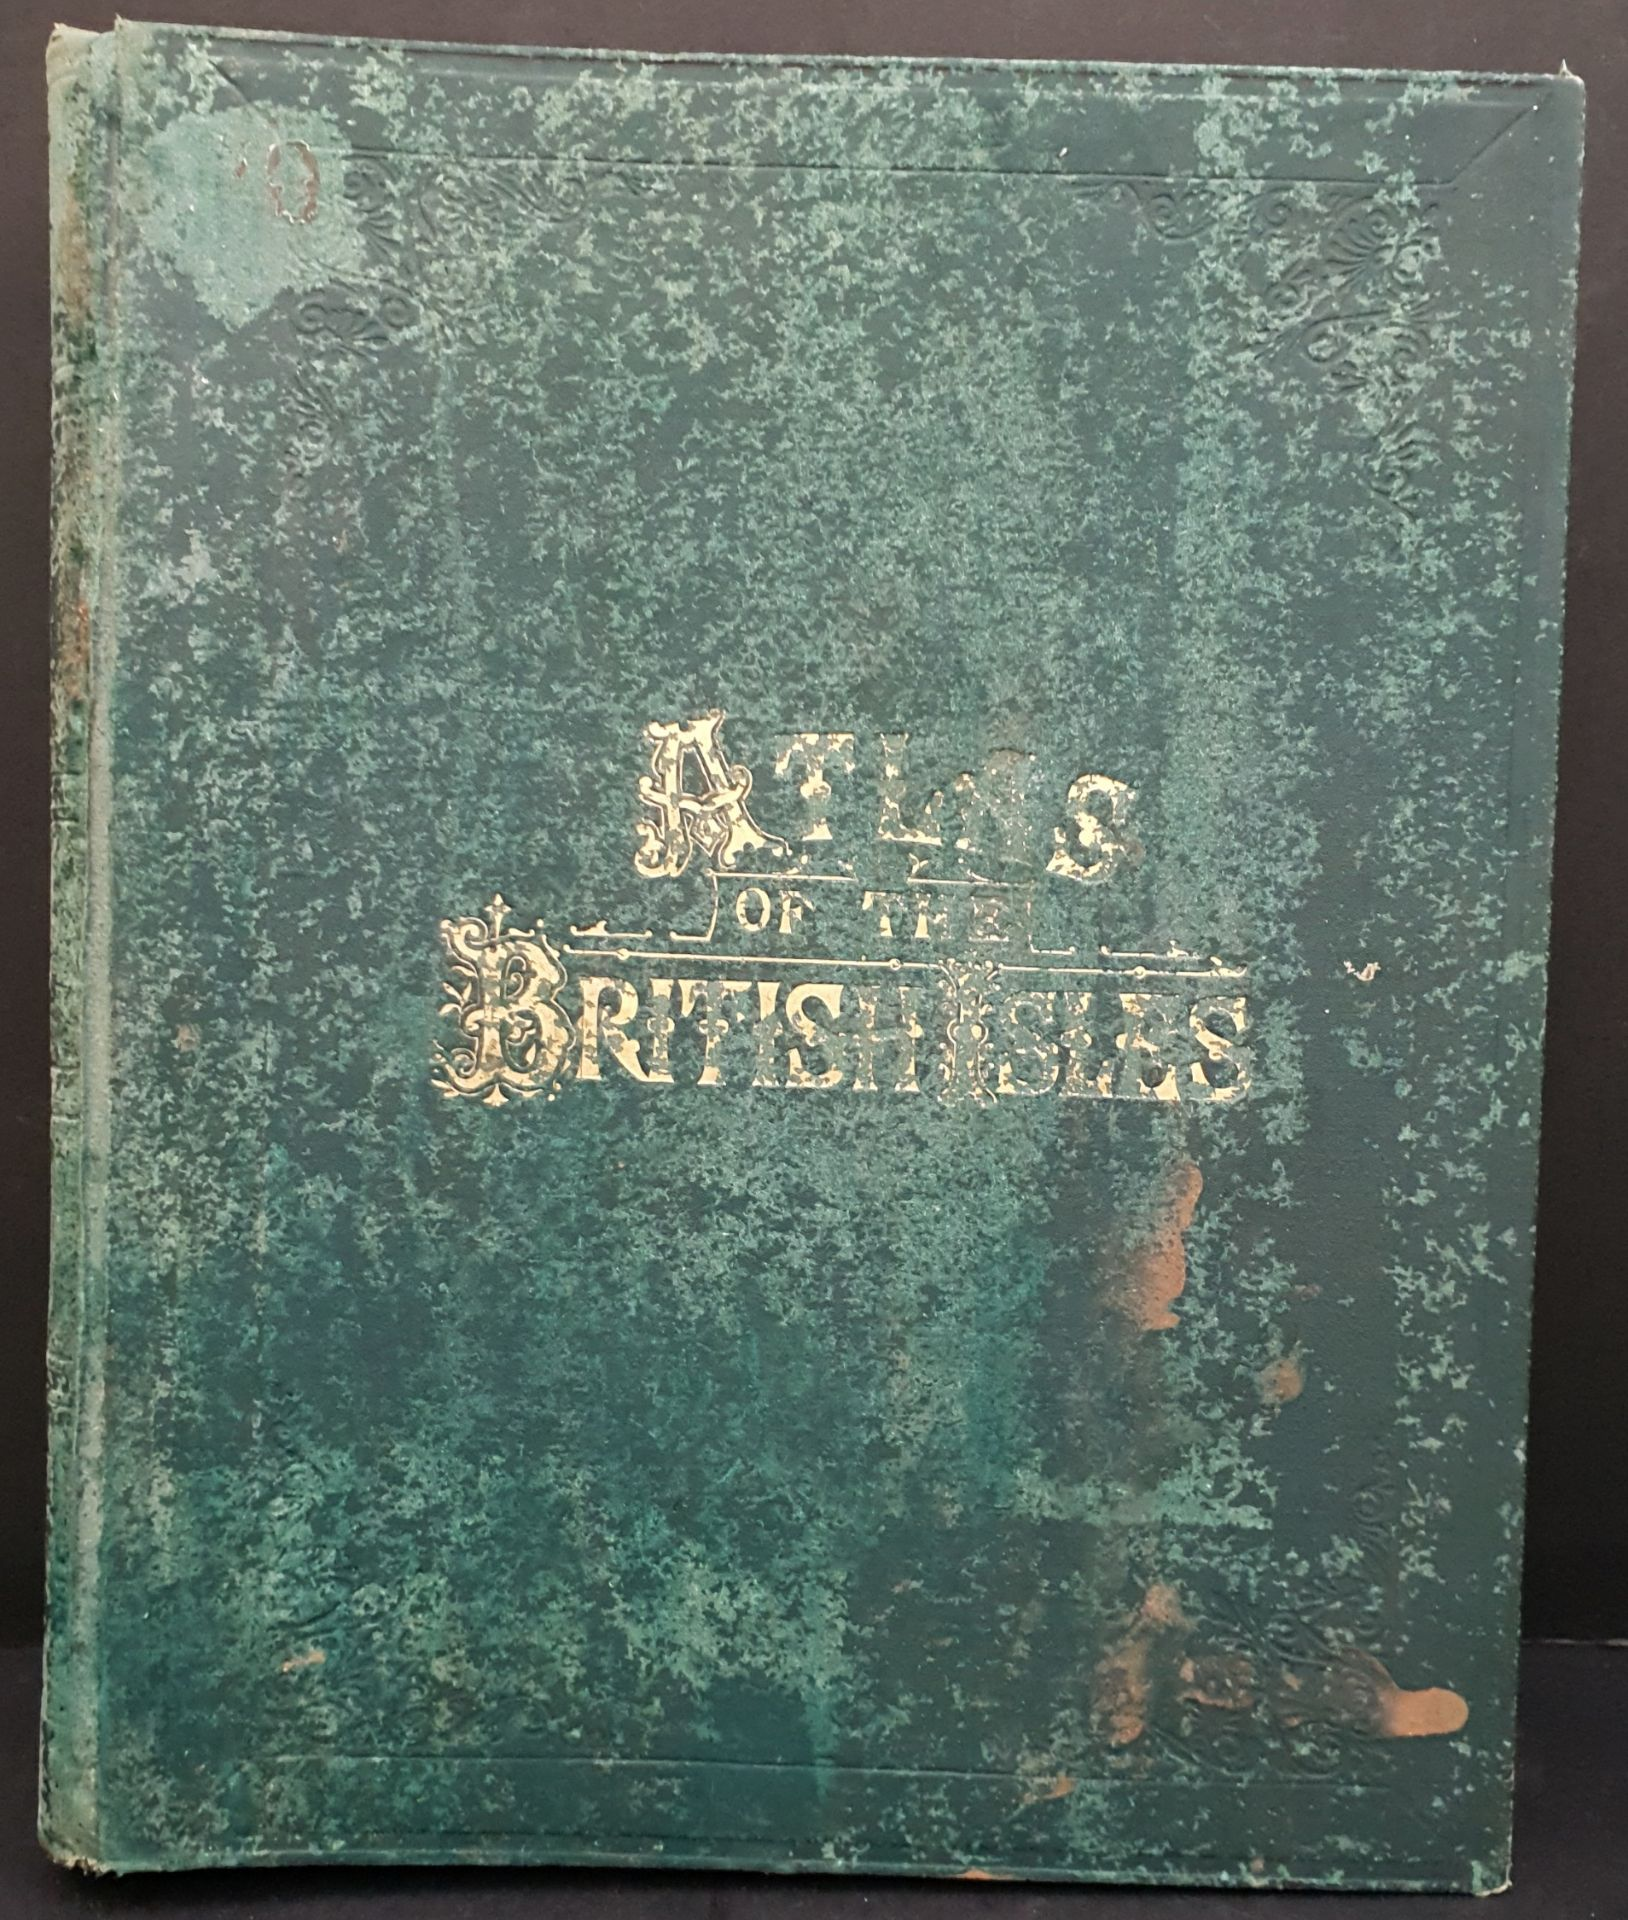 Antiques 1899 Book Atlas Of The British Isles G W Bacon & Co. - Image 2 of 15